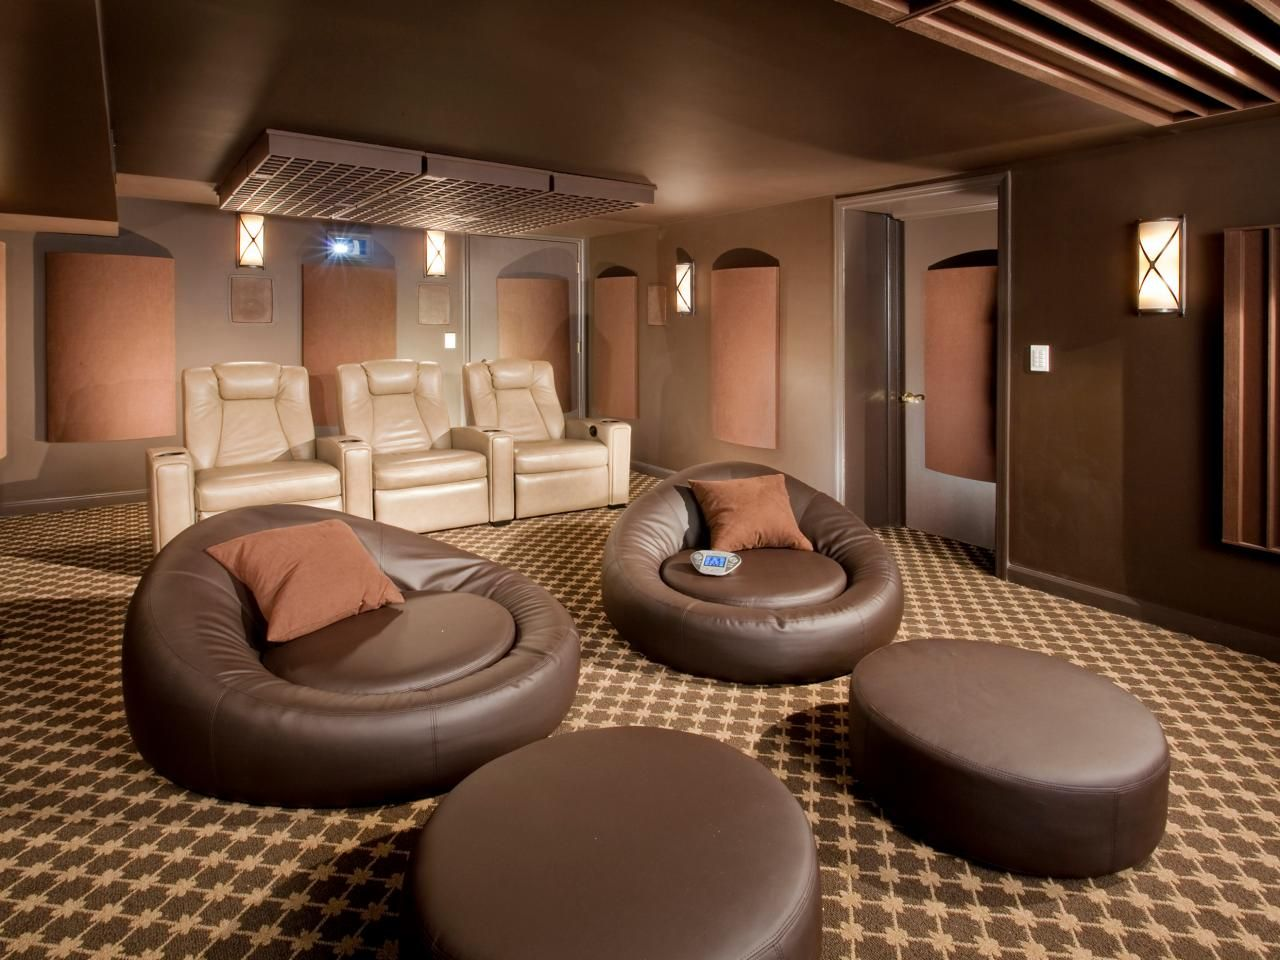 Trends in Home Theater Seating | Recliner, Room and Theatre design